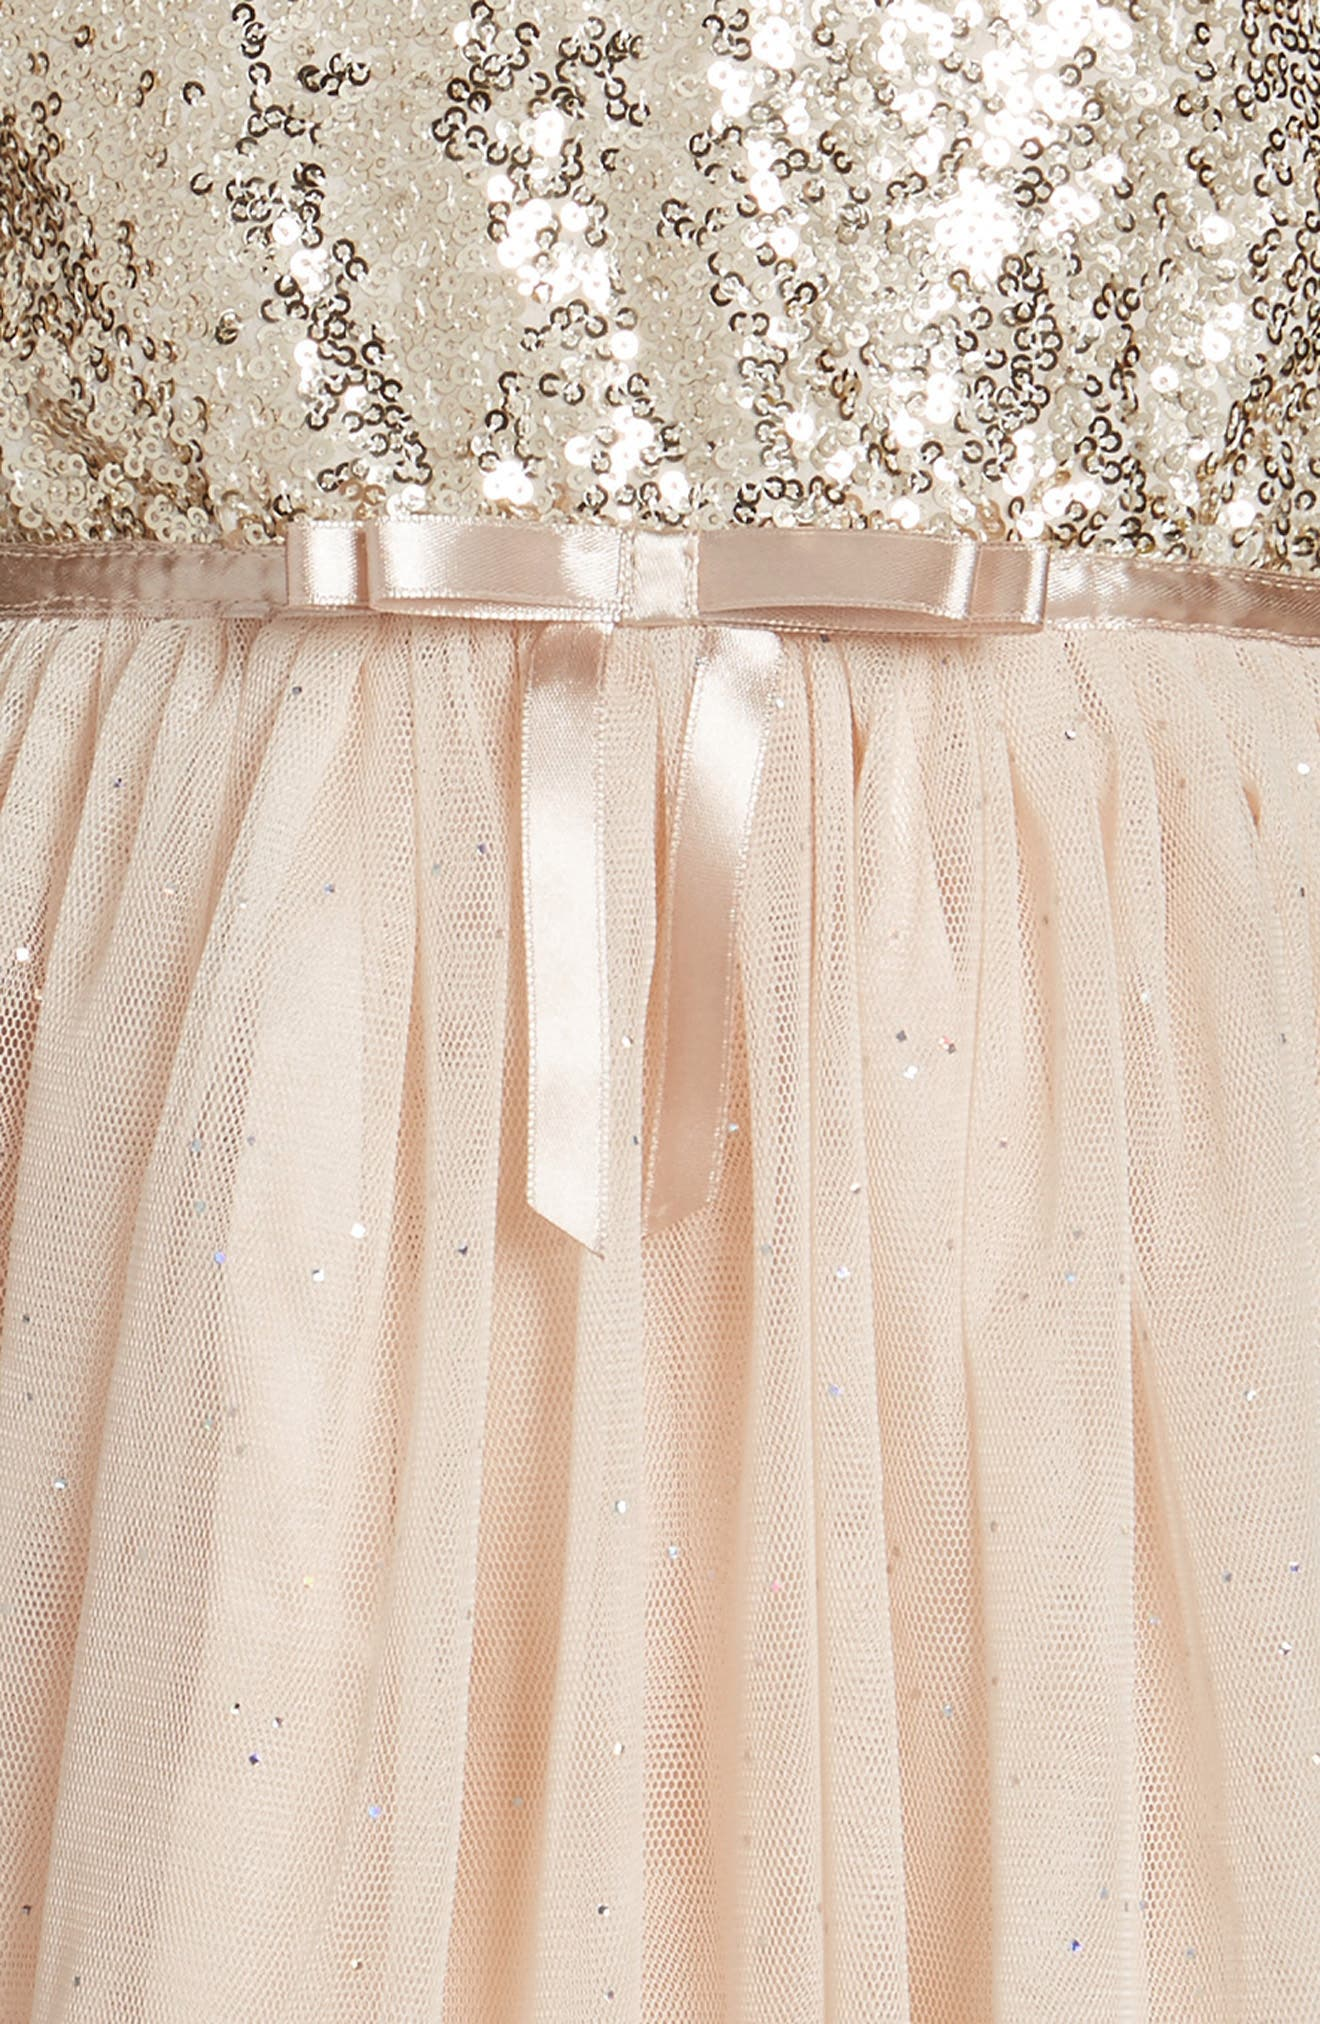 Sequin Bodice Tulle Dress,                             Alternate thumbnail 3, color,                             Ivory/ Gold